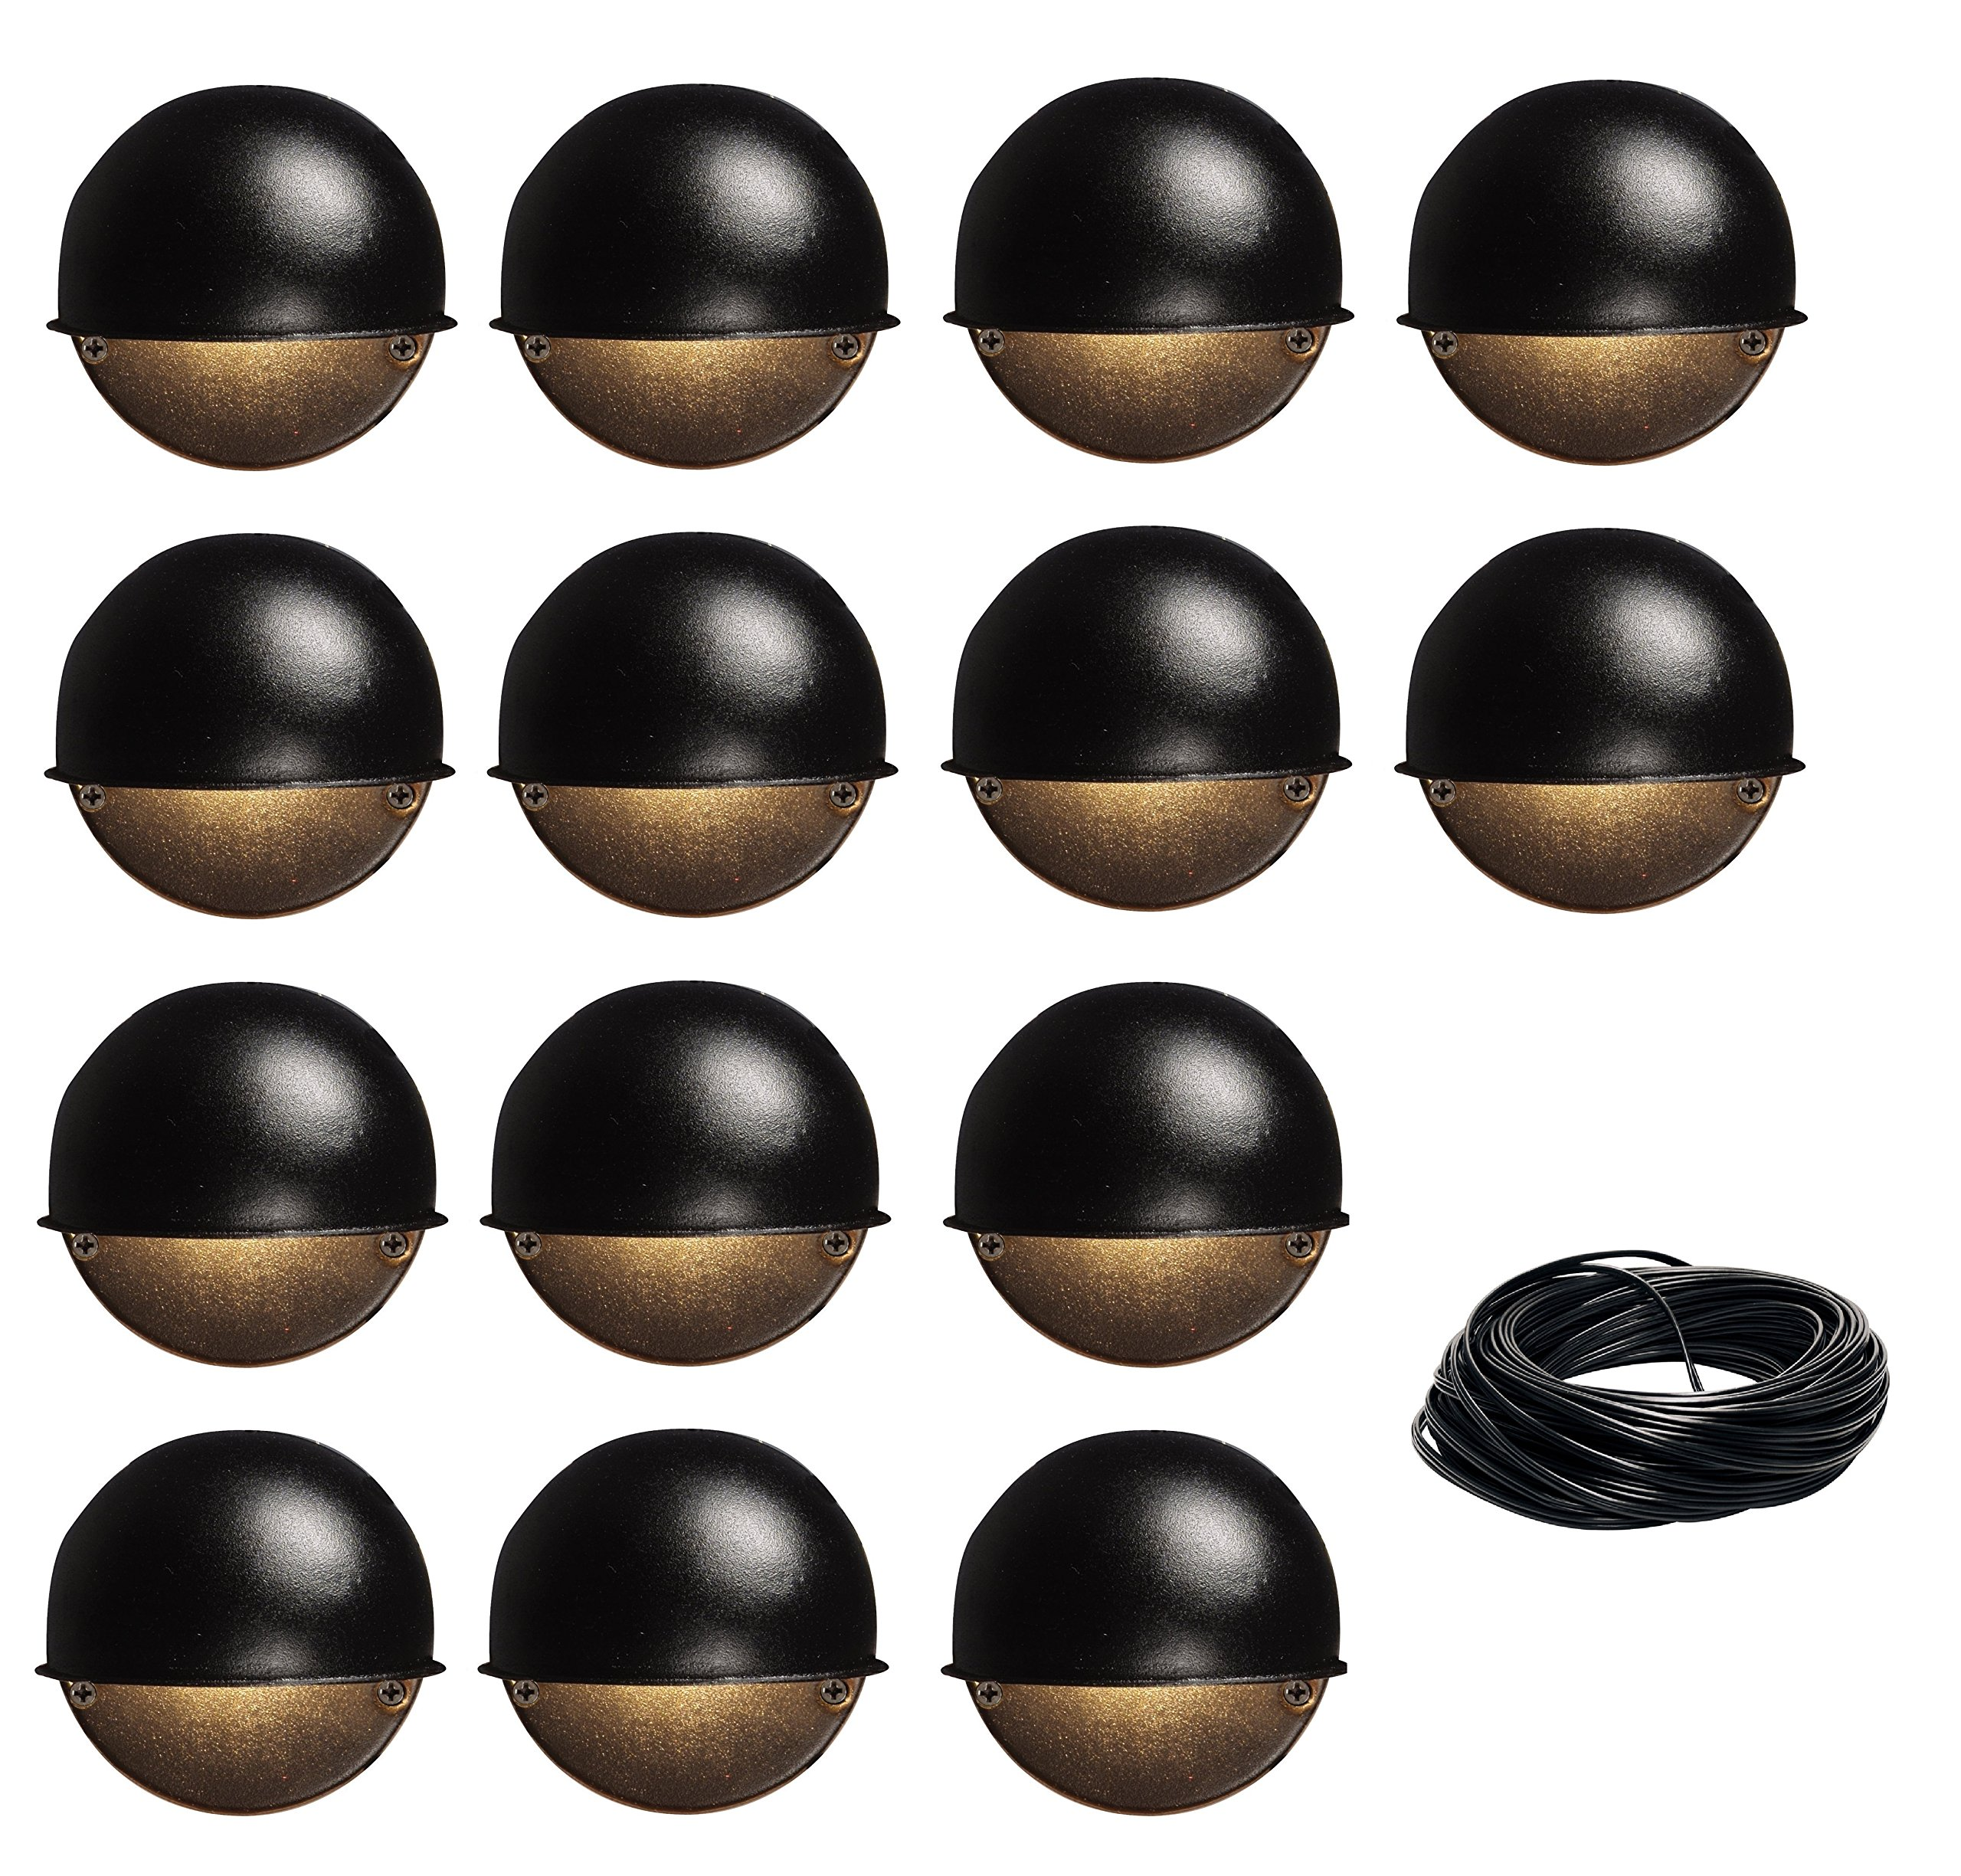 14 Pack Malibu 8301-9400-01 Surface Deck Step Path Lights, Round, Cast Metal, 7 Watt, Black Finish + 100 ft landscape wire BY MALIBU DISTRIBUTION